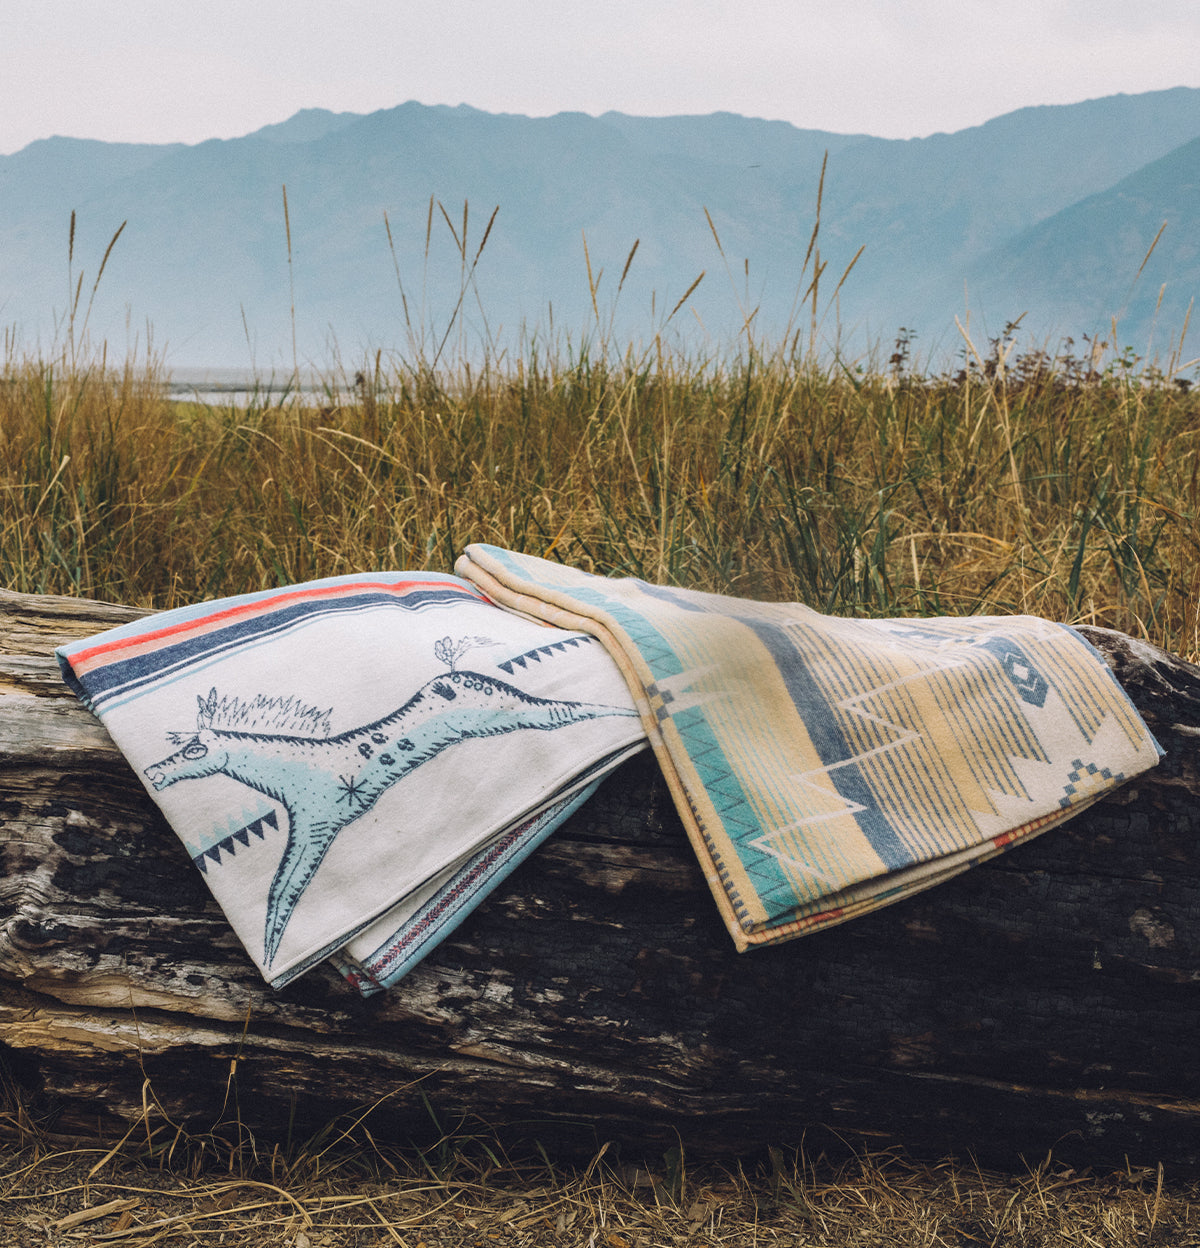 Two blankets stacked on a log in a field with mountains in the background.